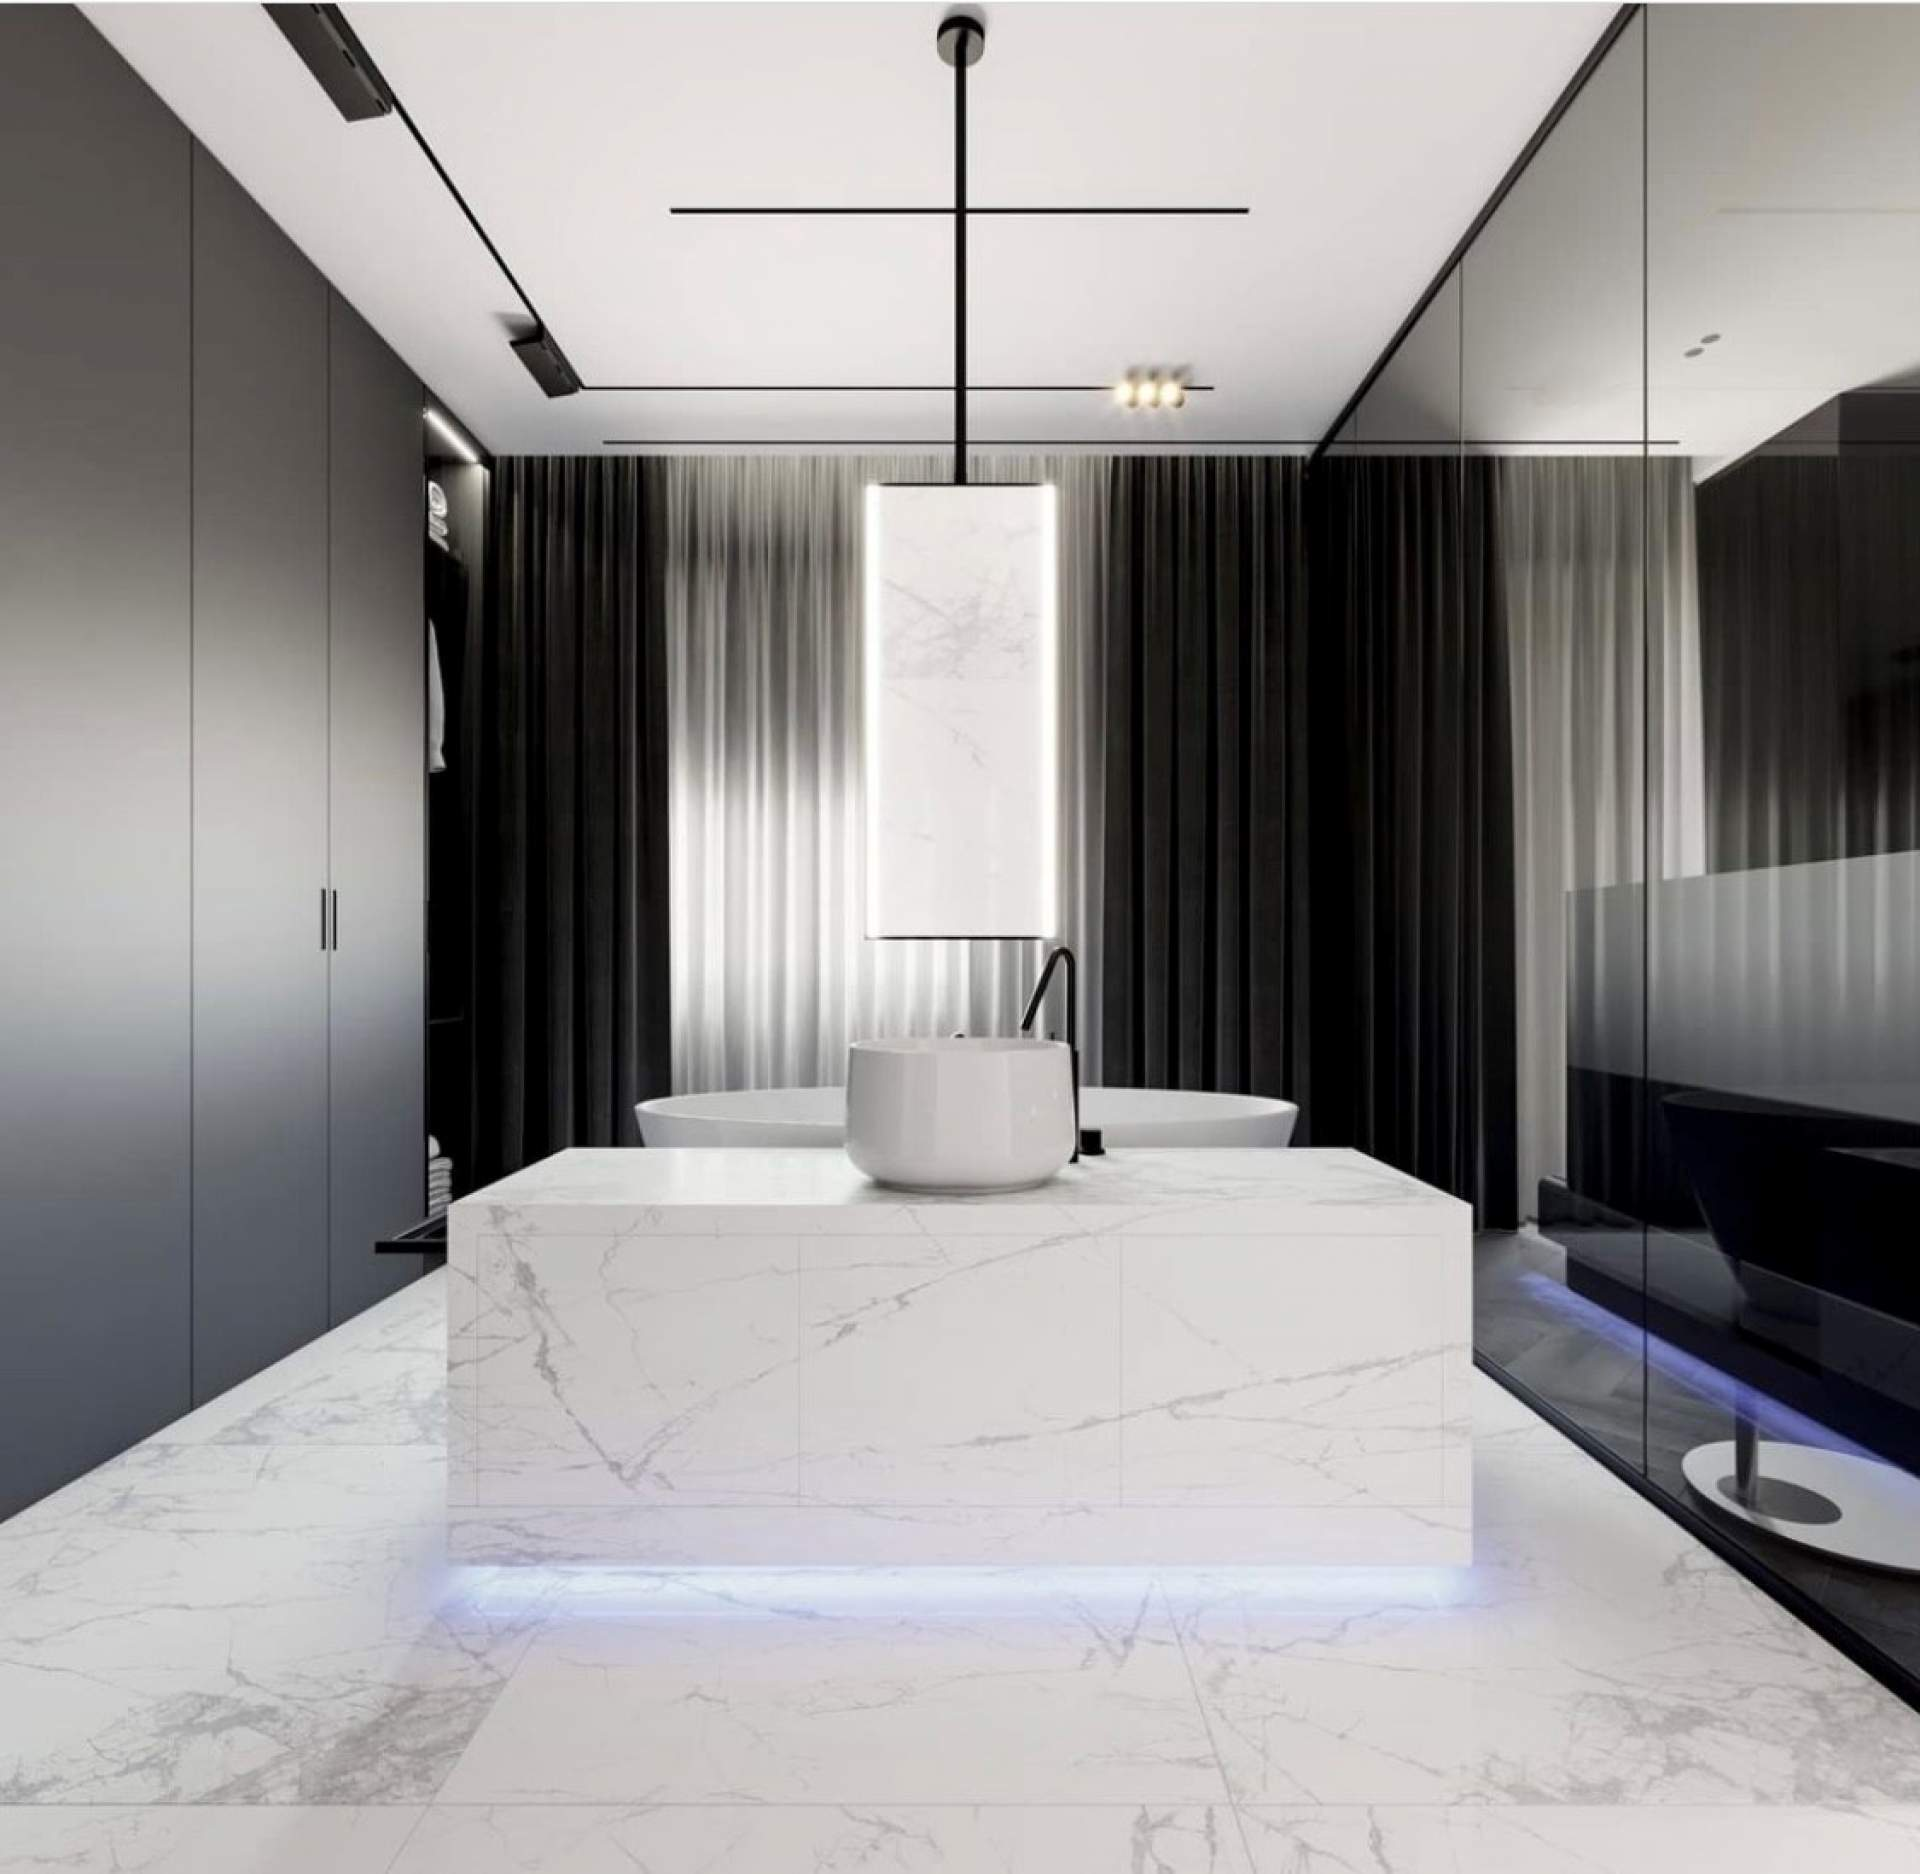 Visual cloakroom setting using White Polished Tile